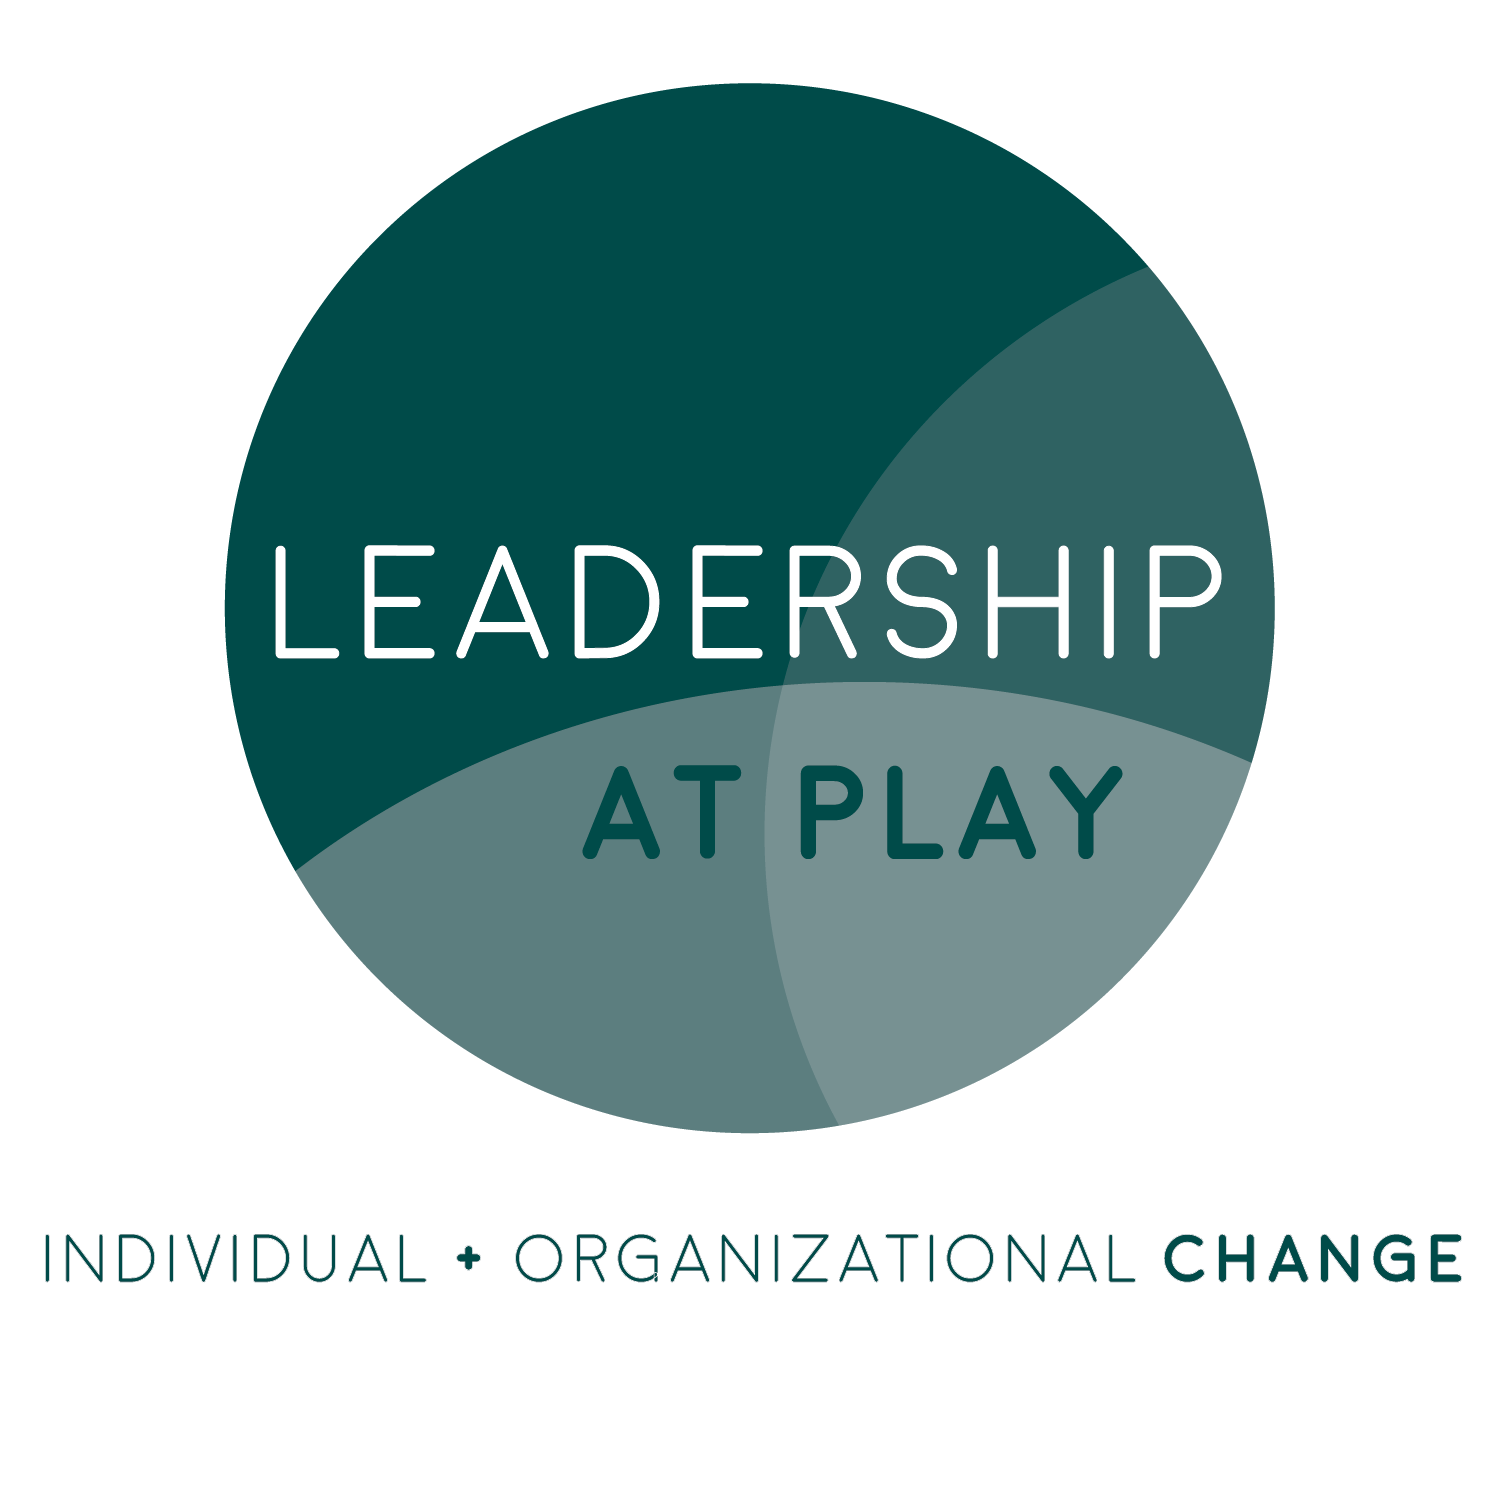 leadershipatplay-final options_full color + low tagline.png